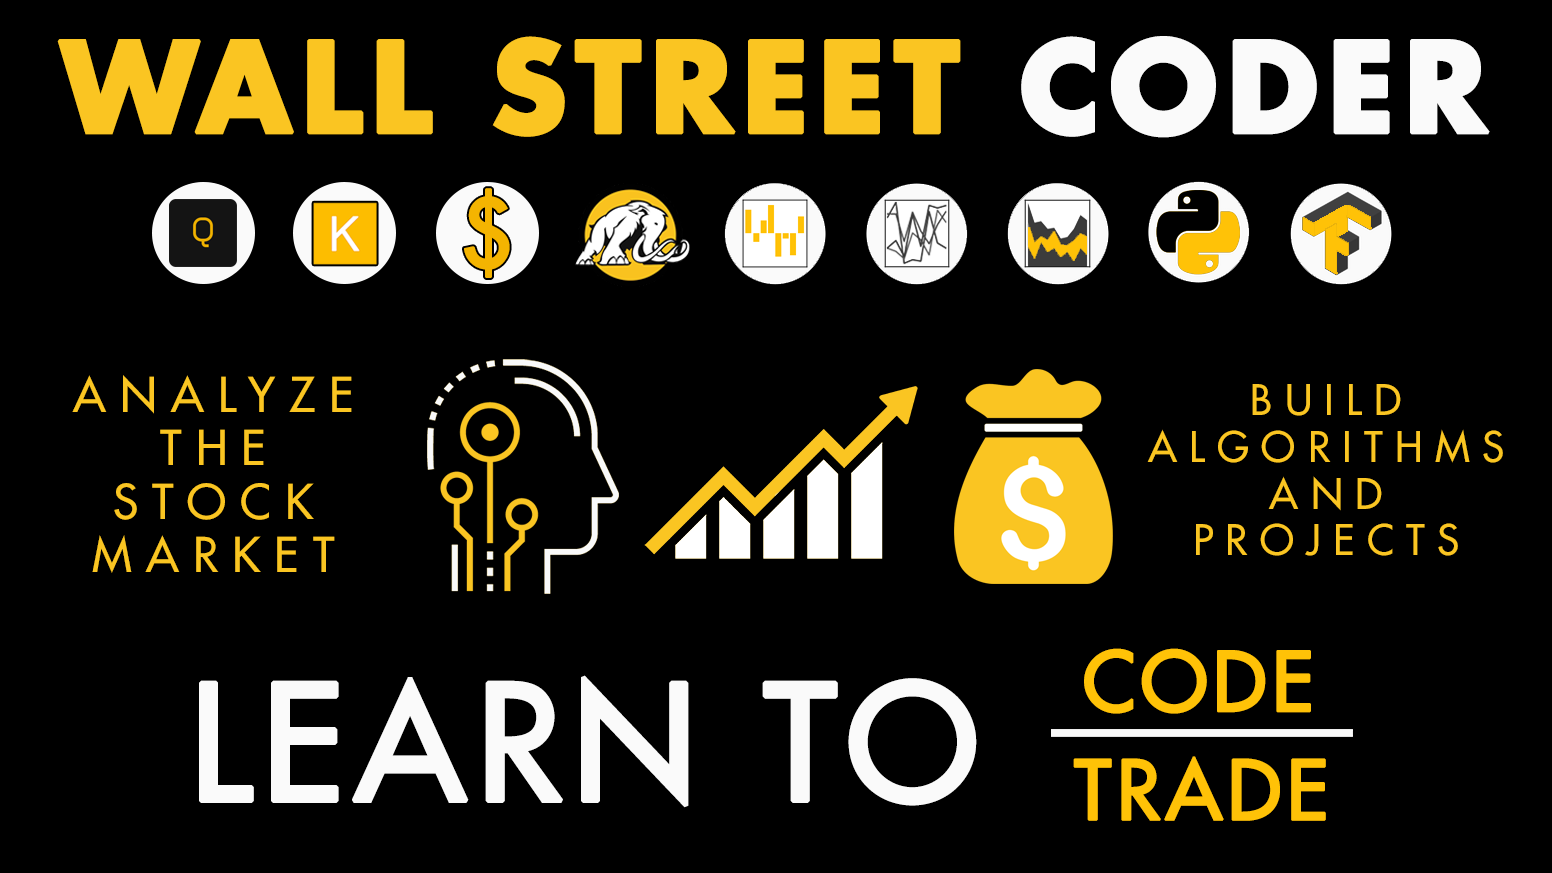 Wall Street Coder: Anybody Can Learn to Code and Trade by